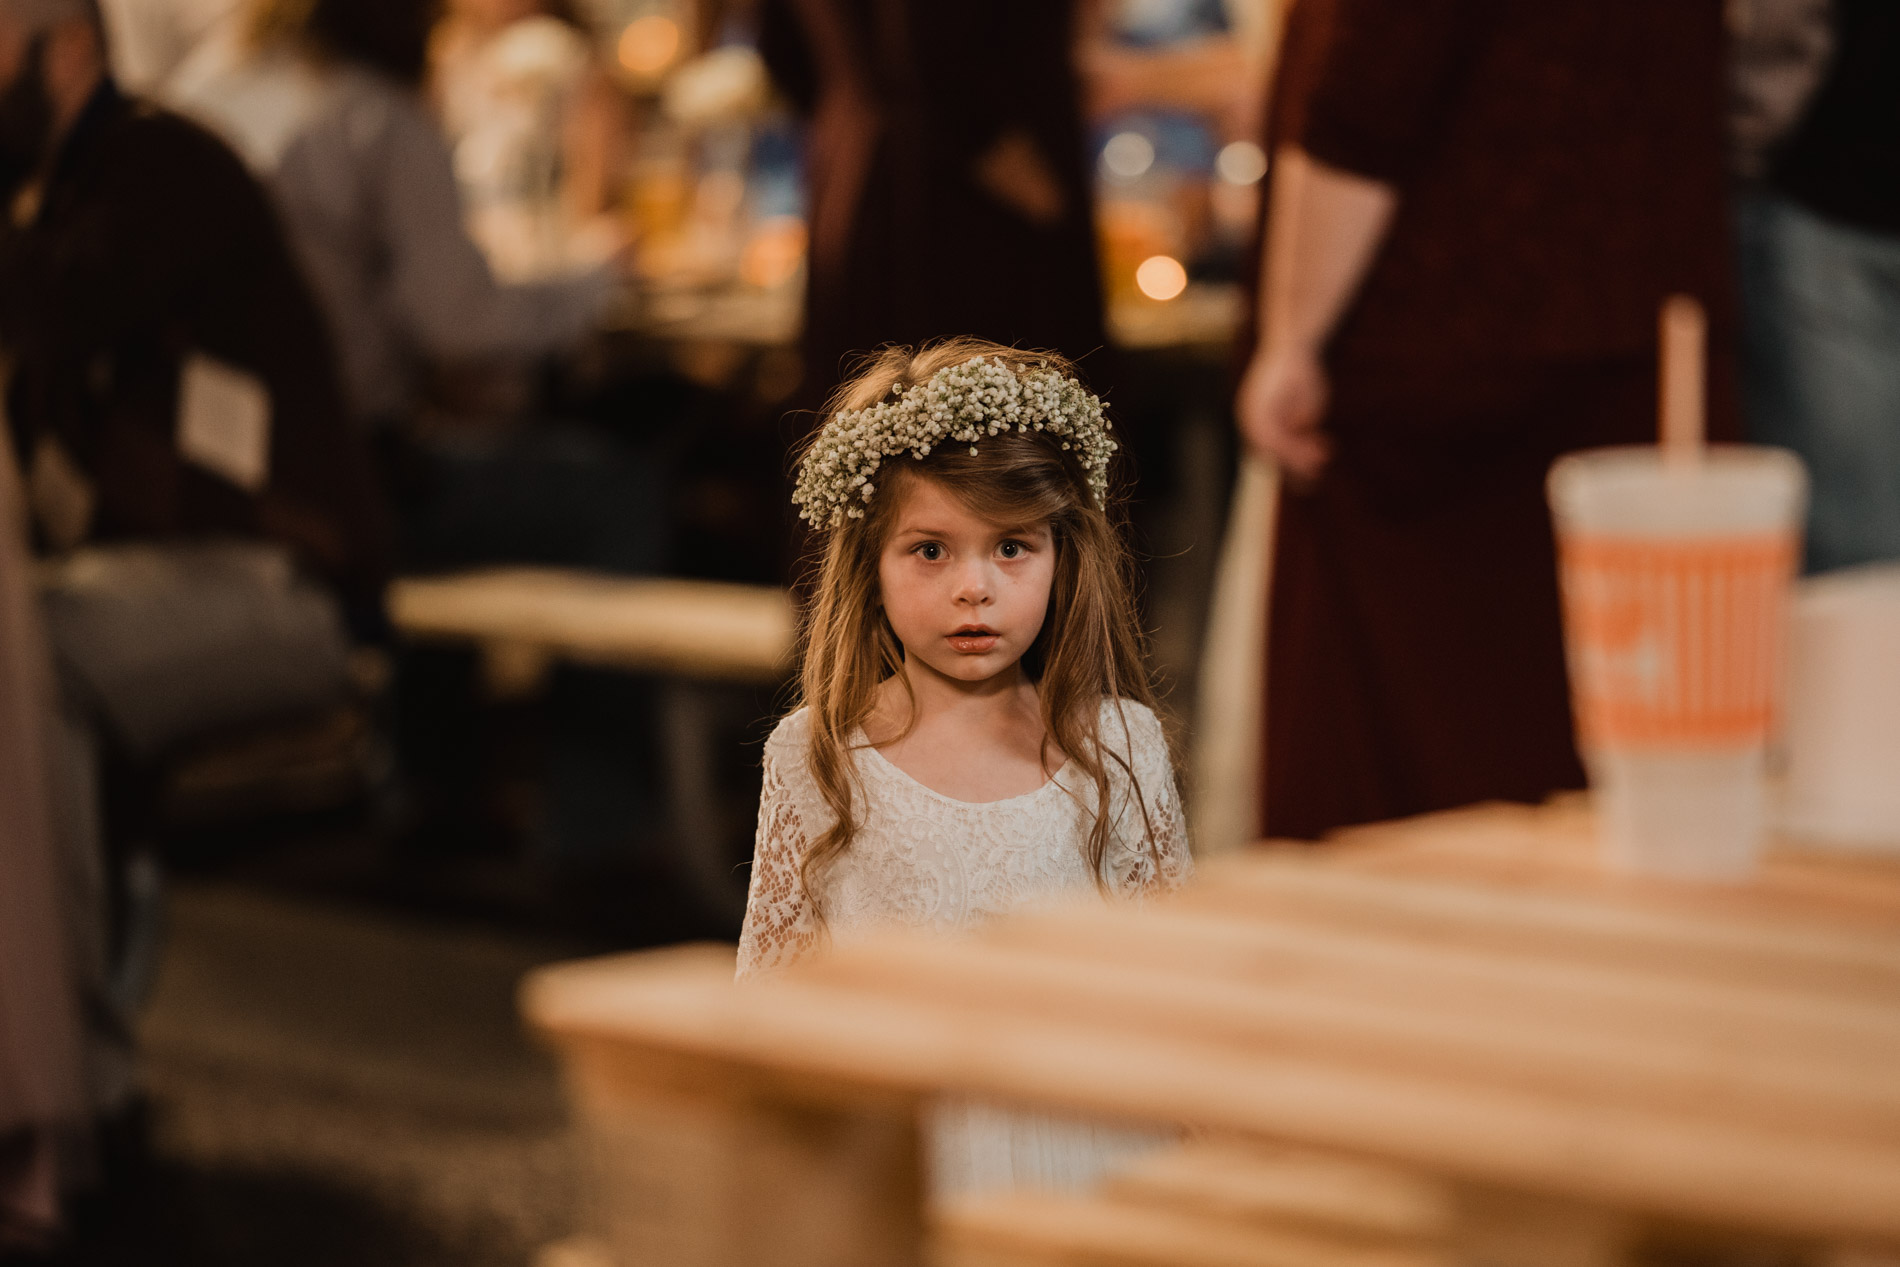 adorable flower girl at wedding ceremony